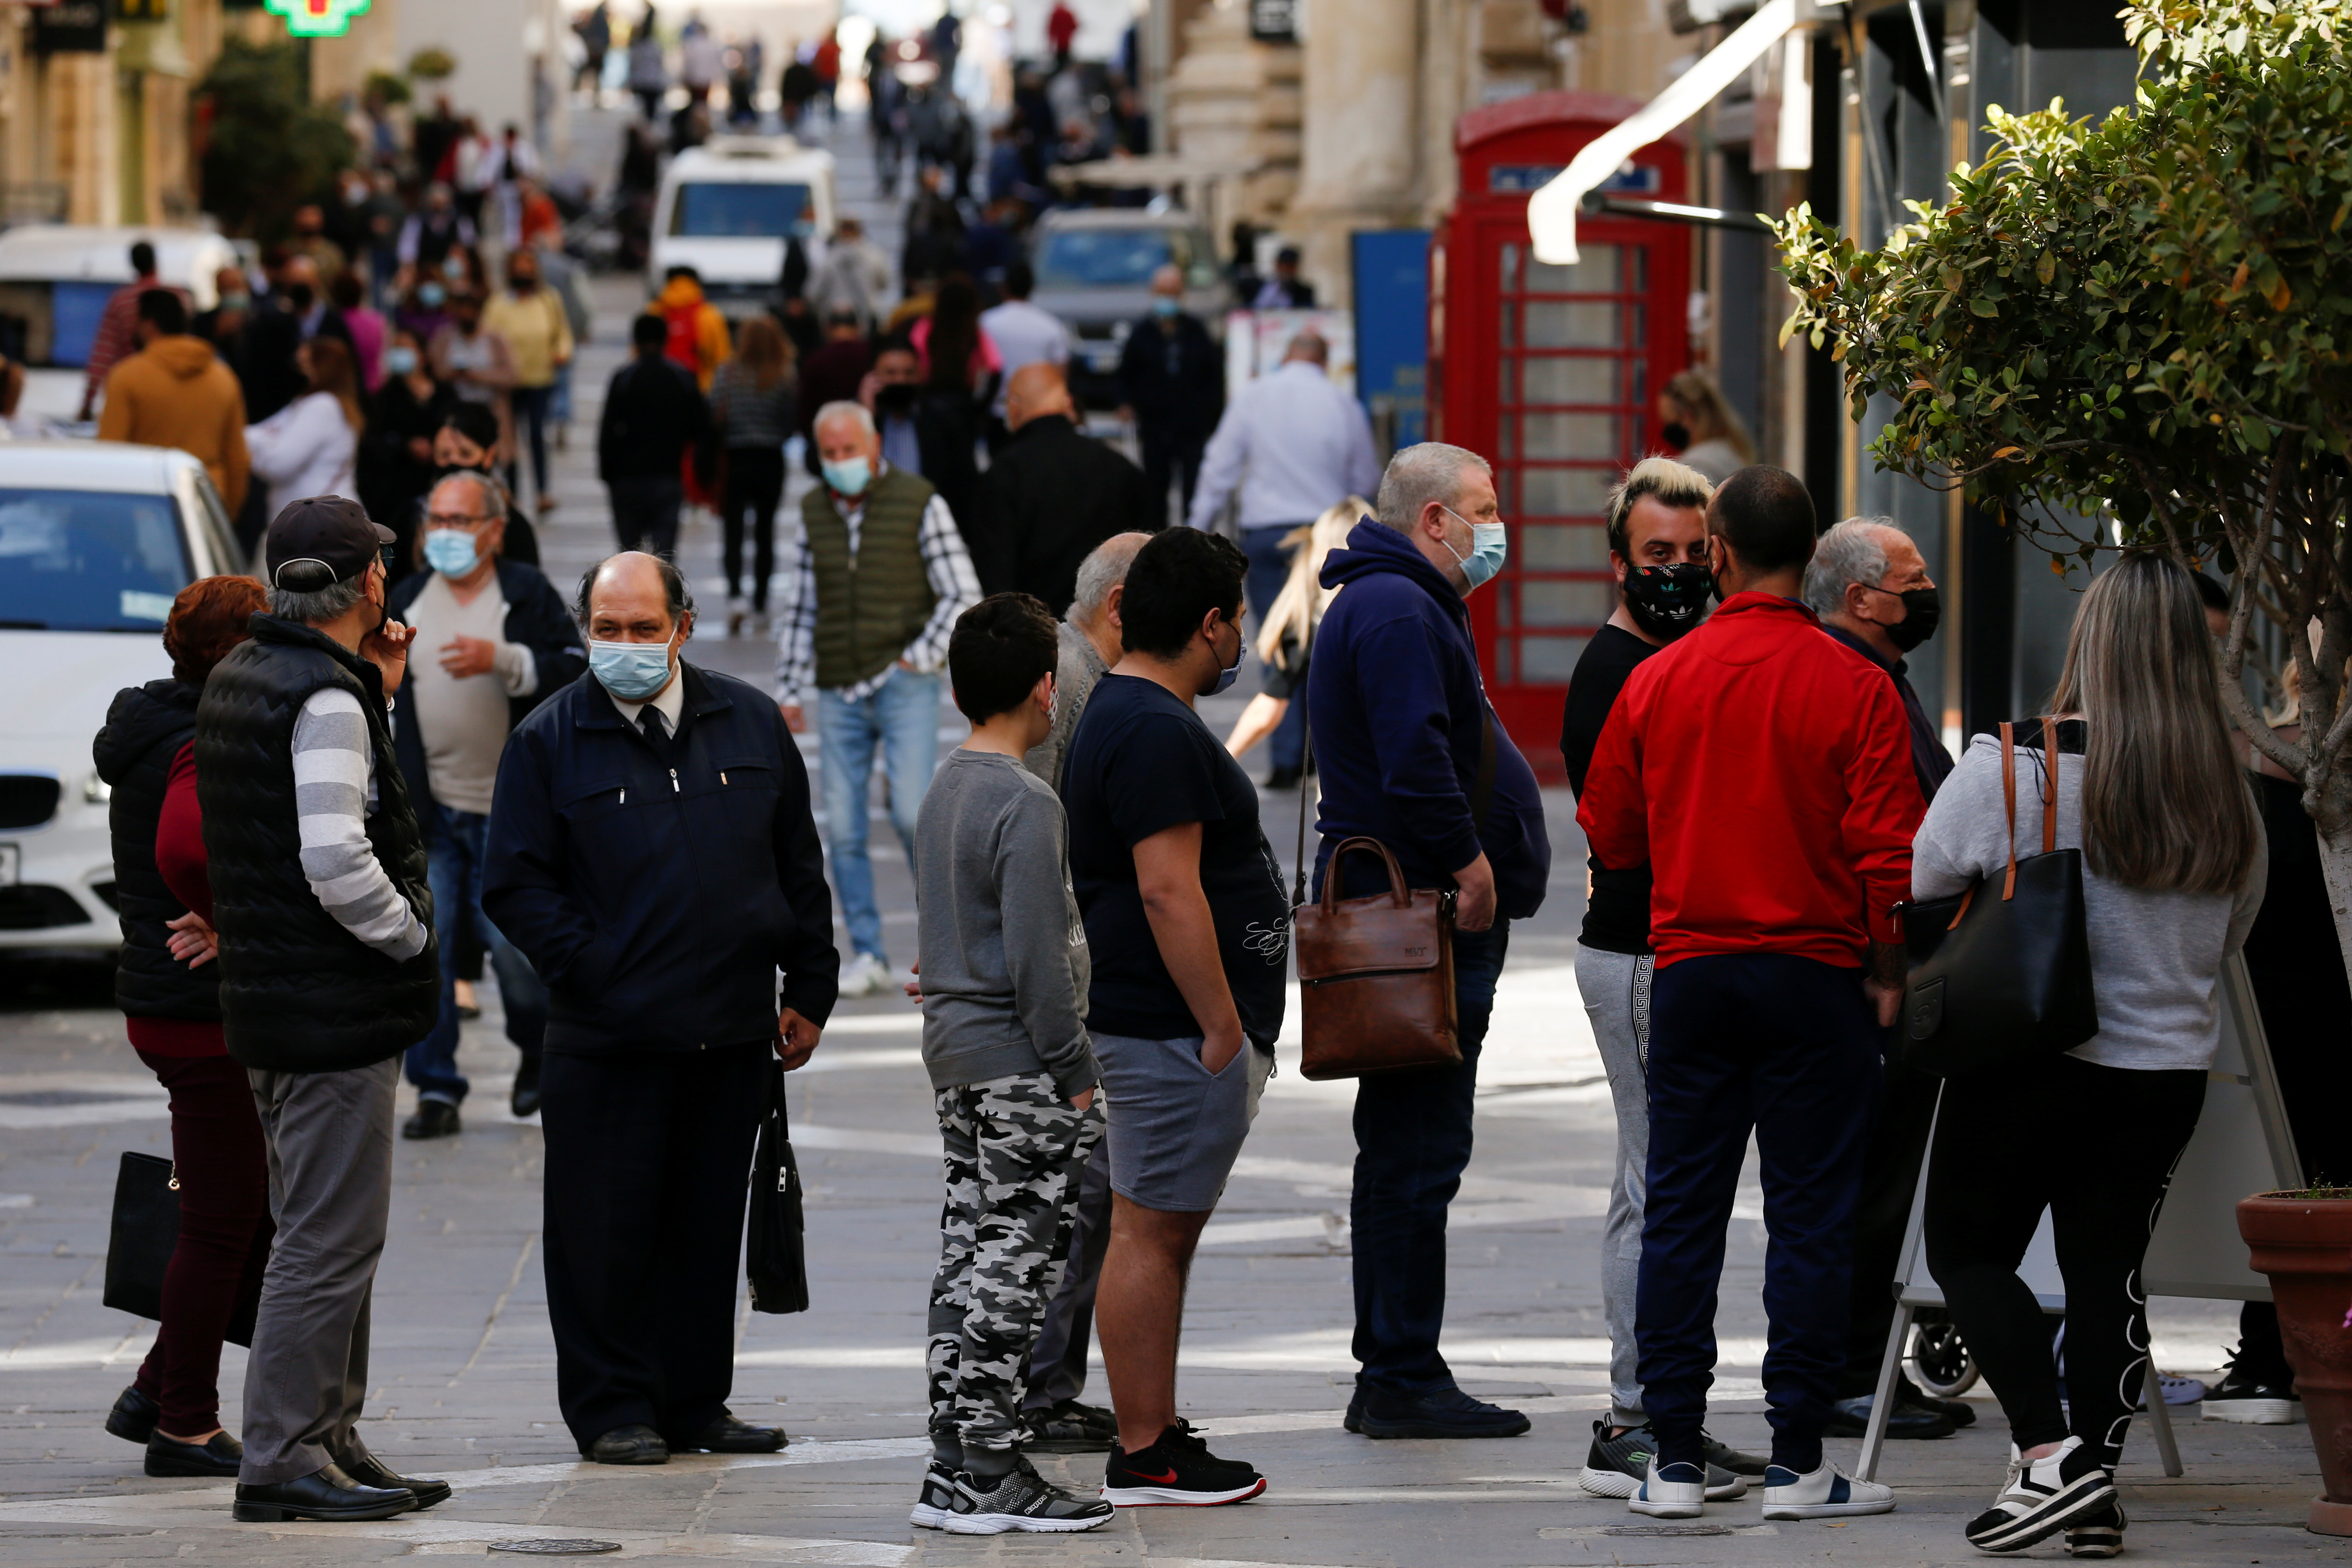 People wearing protective face masks queue to enter a shopping arcade as non-essential shops and services reopen for business after a seven-week-long shutdown because of the coronavirus disease (COVID-19) pandemic, in Valletta, Malta April 26, 2021. REUTERS/Darrin Zammit Lupi